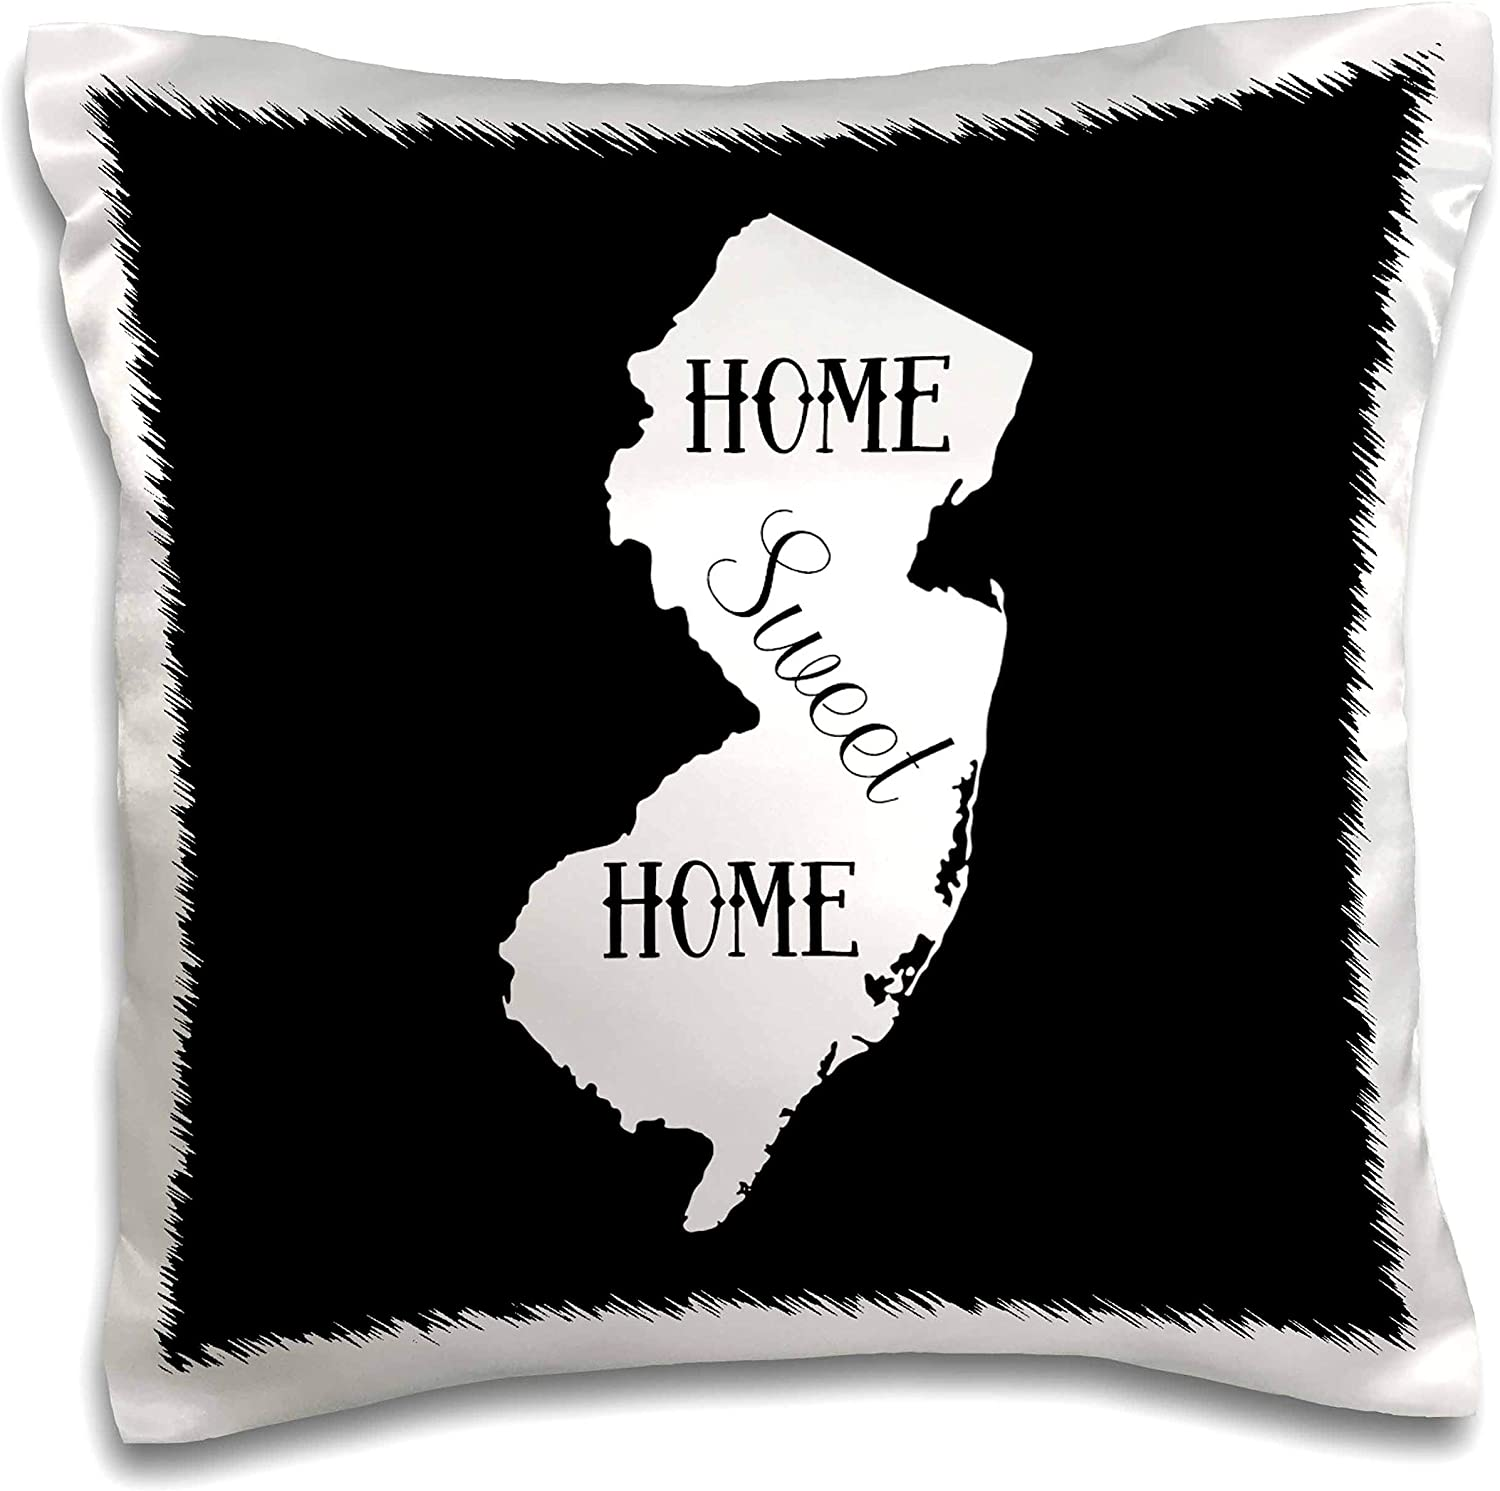 3dRose Stamp City - typography - Home Sweet Home inside the state of New Jersey. Black background. - 16x16 inch Pillow Case (pc_324154_1)